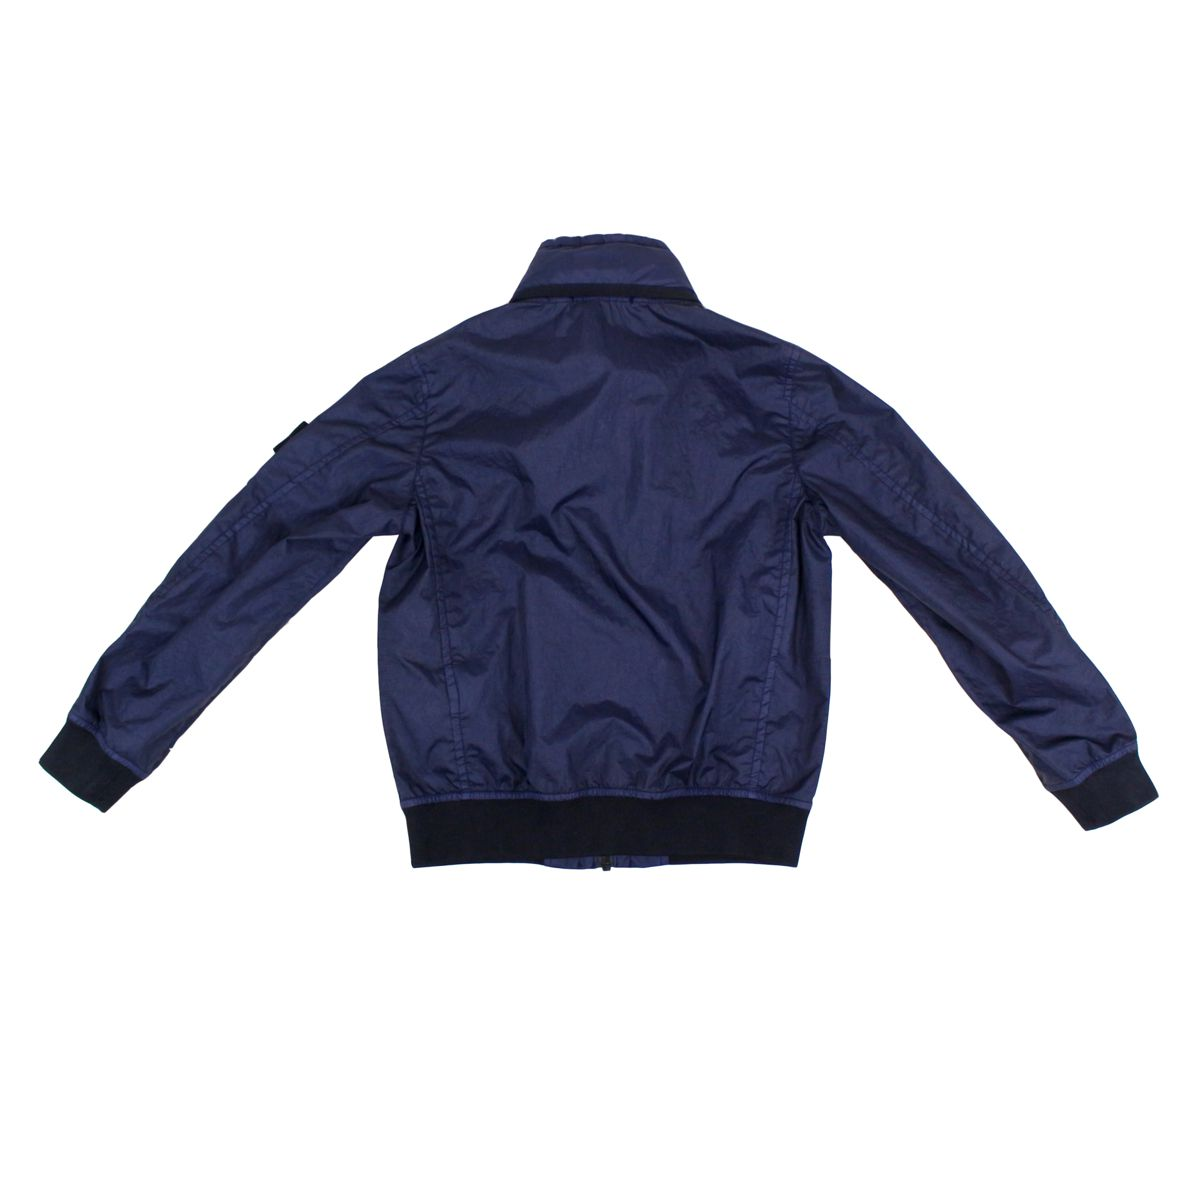 jacket with front pockets Ink Stone Island